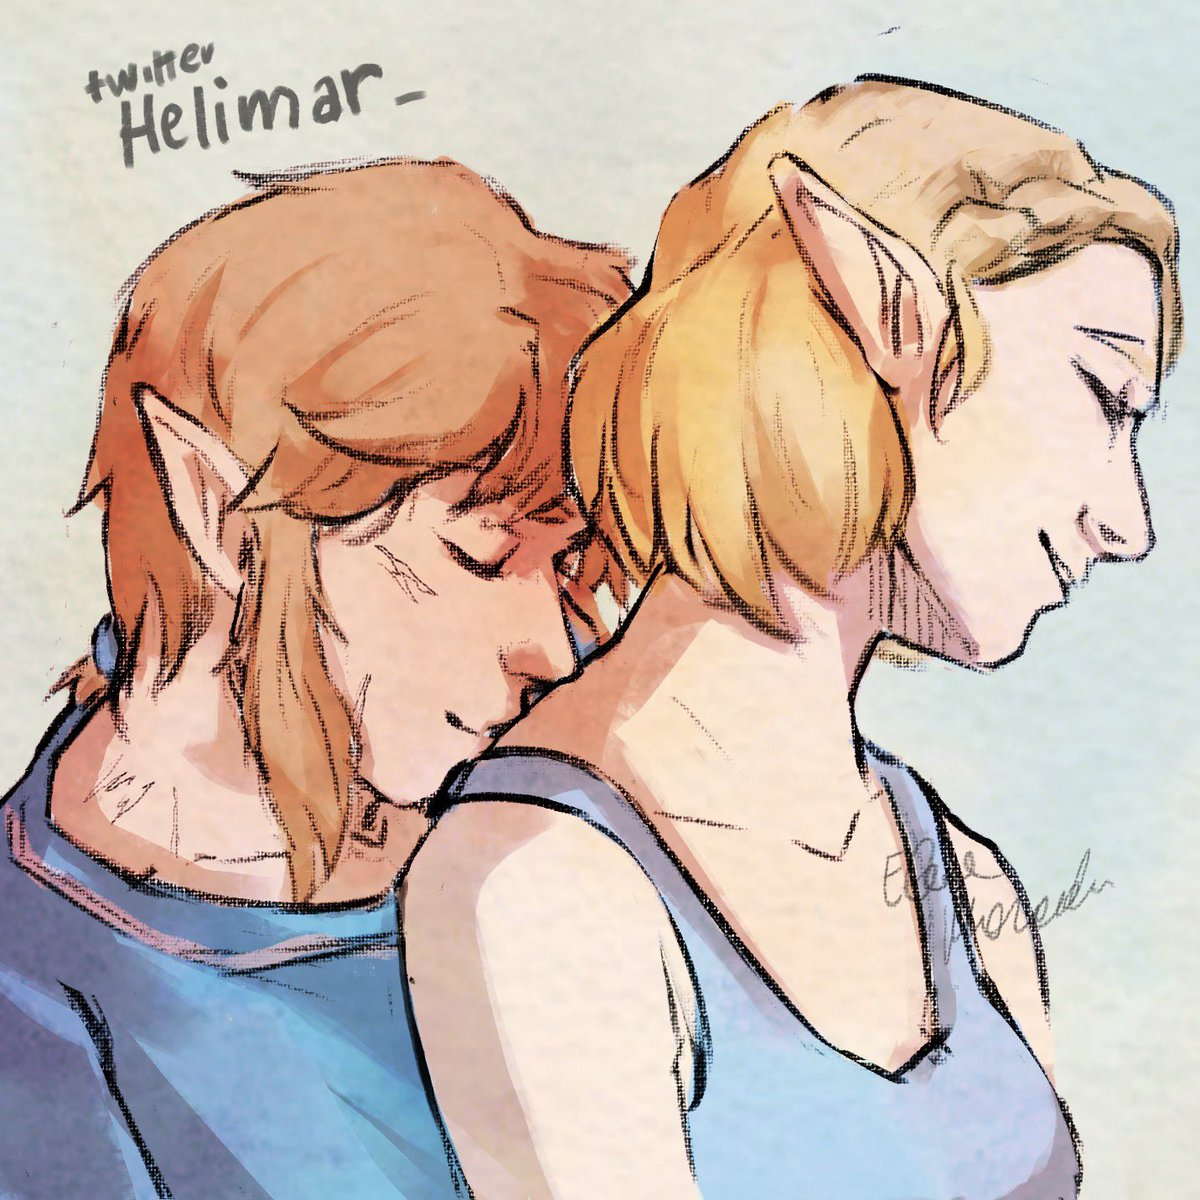 Now is easier kissing her back   #zelink #loz #botw2 #TheLegendOfZeldaBreathOfTheWild2 #TheLegendofZelda #BreathoftheWild #BreathoftheWild2<br>http://pic.twitter.com/lA0qgNULW5